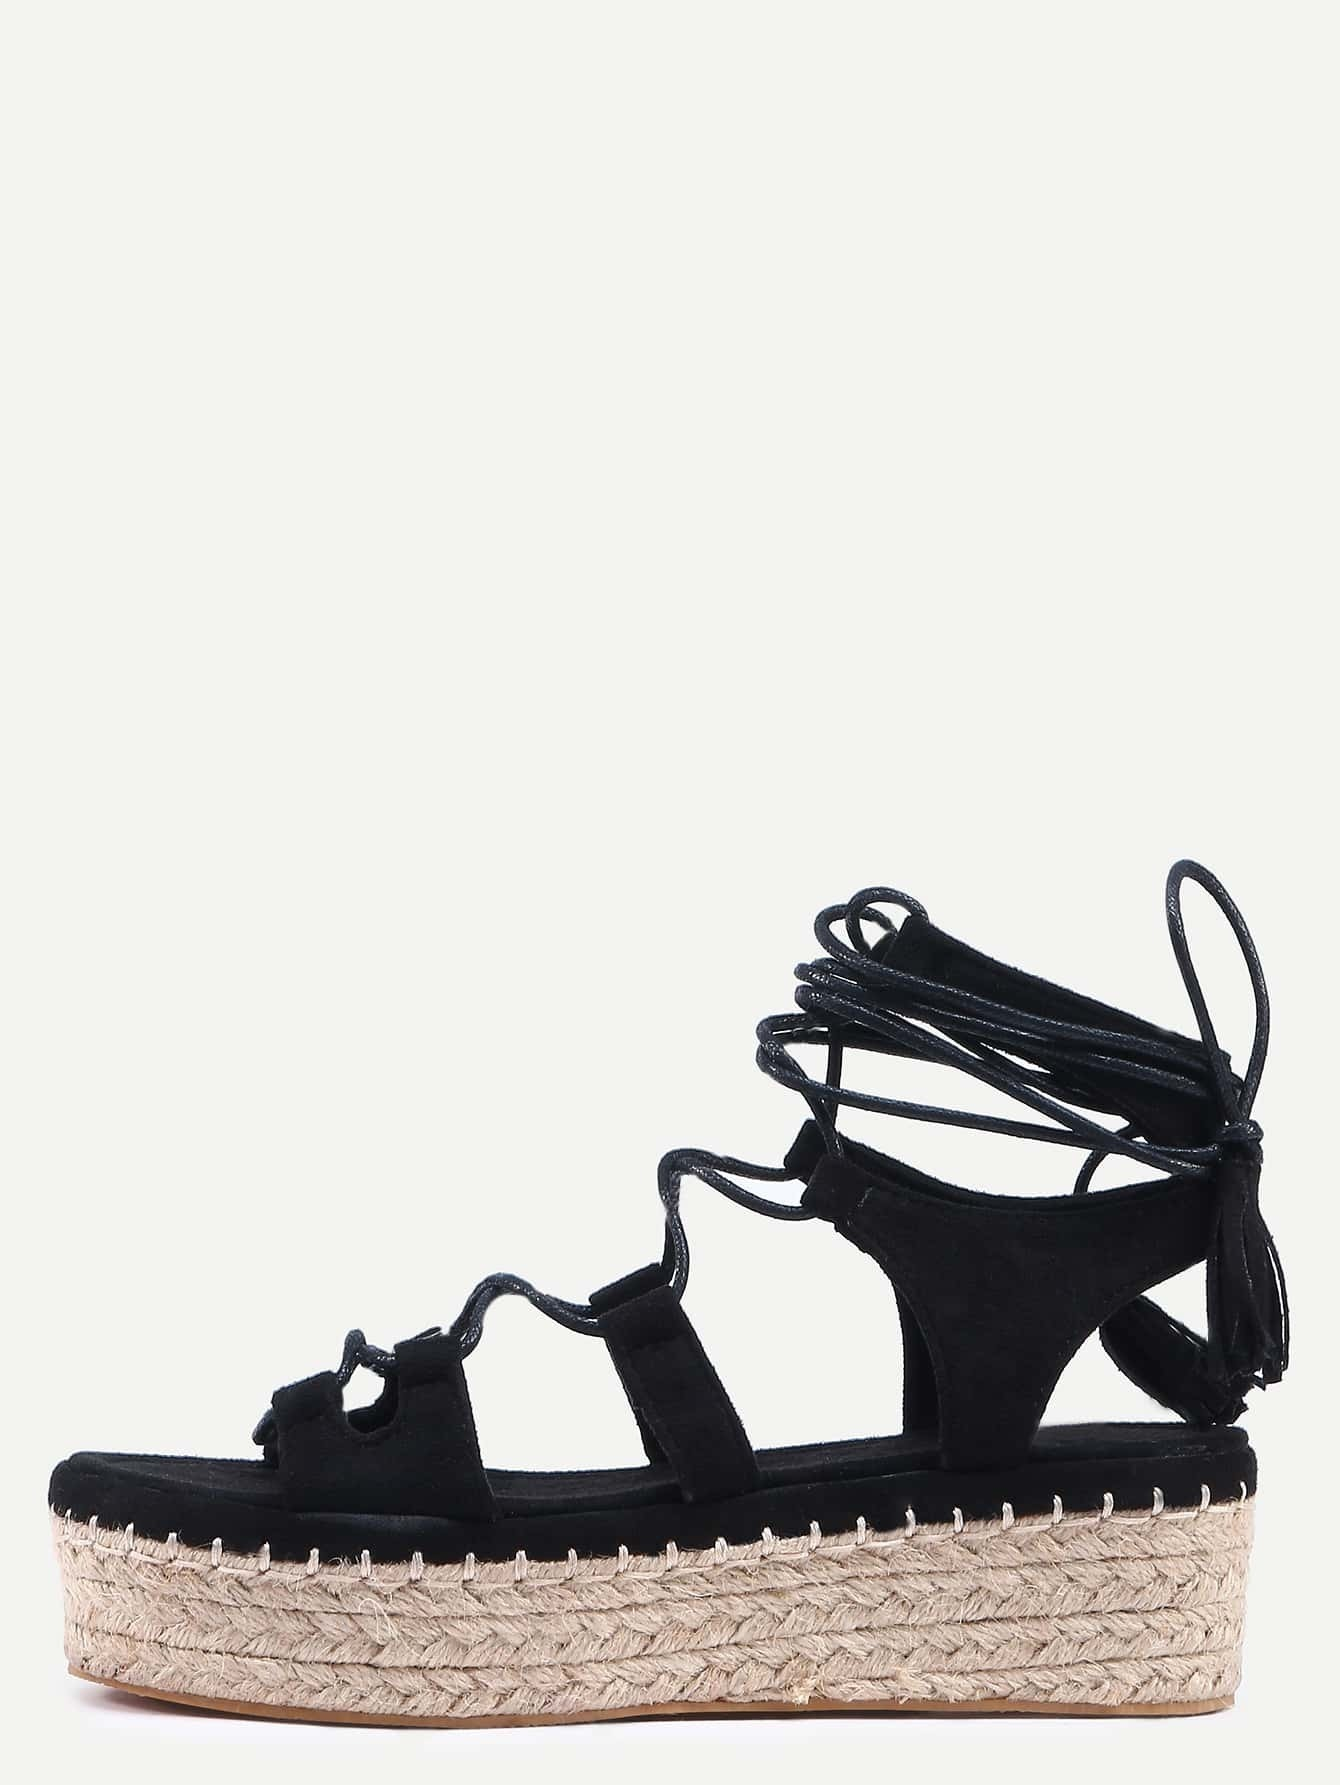 3c08af261158 Black Peep Toe Tassel Lace-up Espadrille Wedges EmmaCloth ...